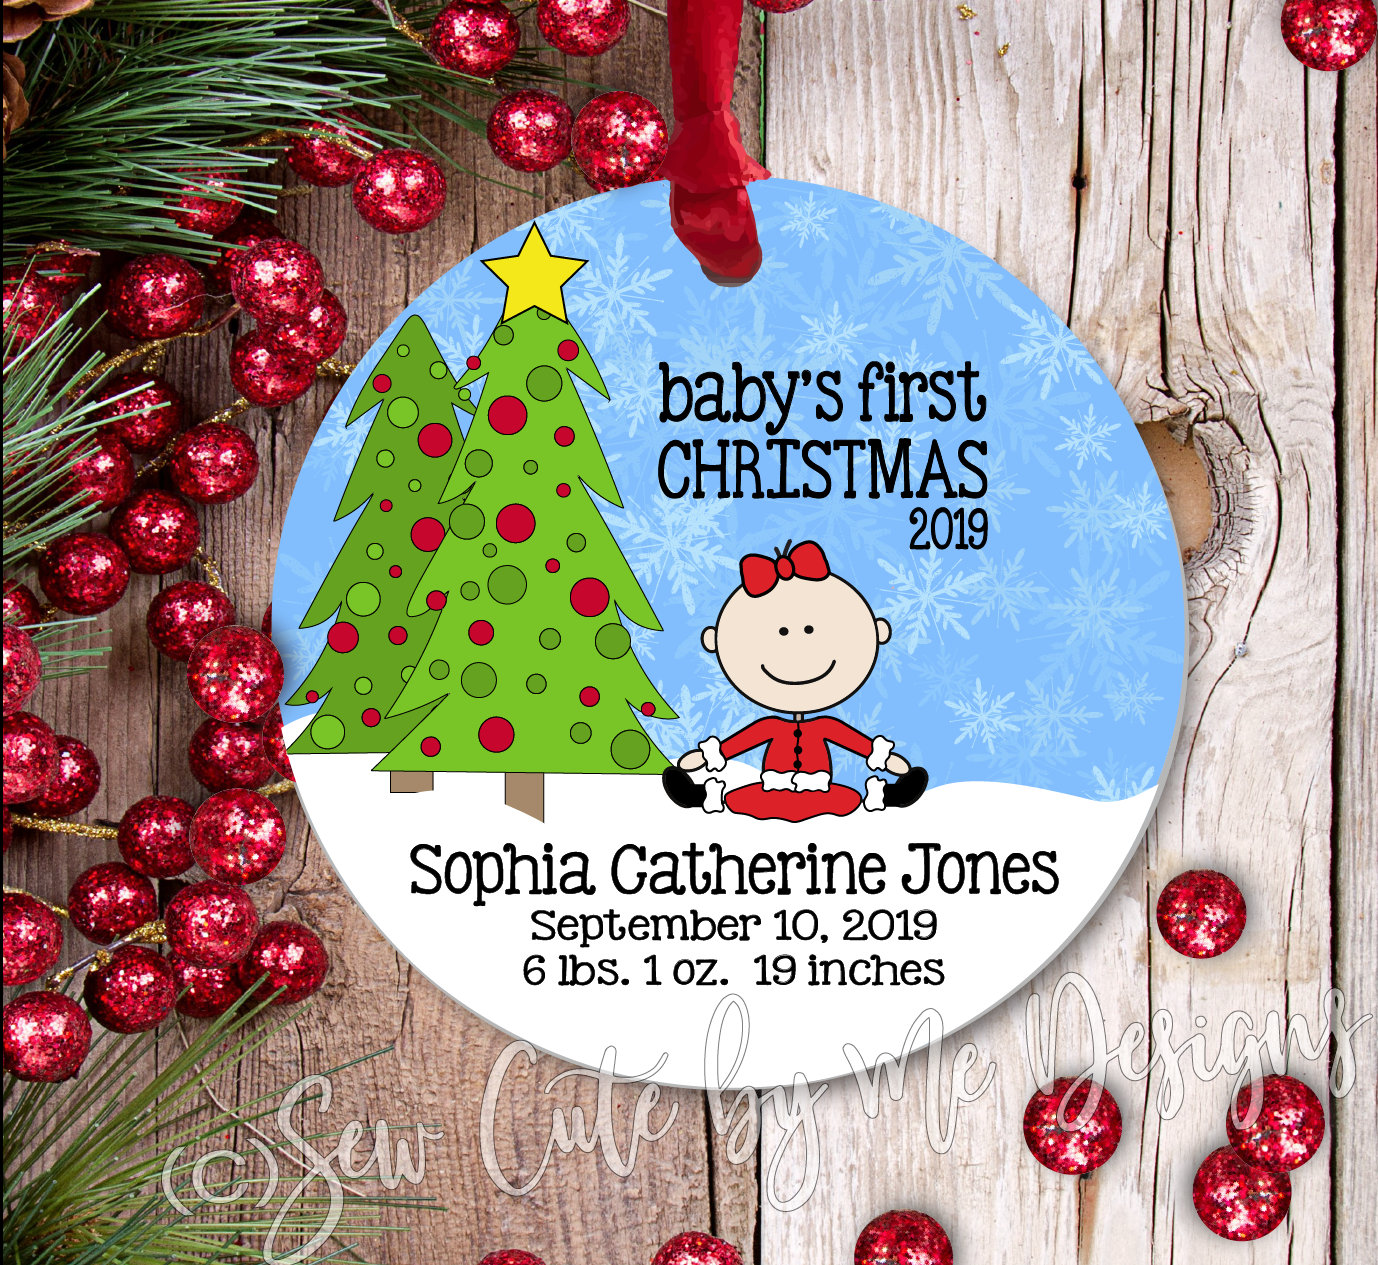 A Christmas Ornament – Personalized Baby's First Christmas - Girl